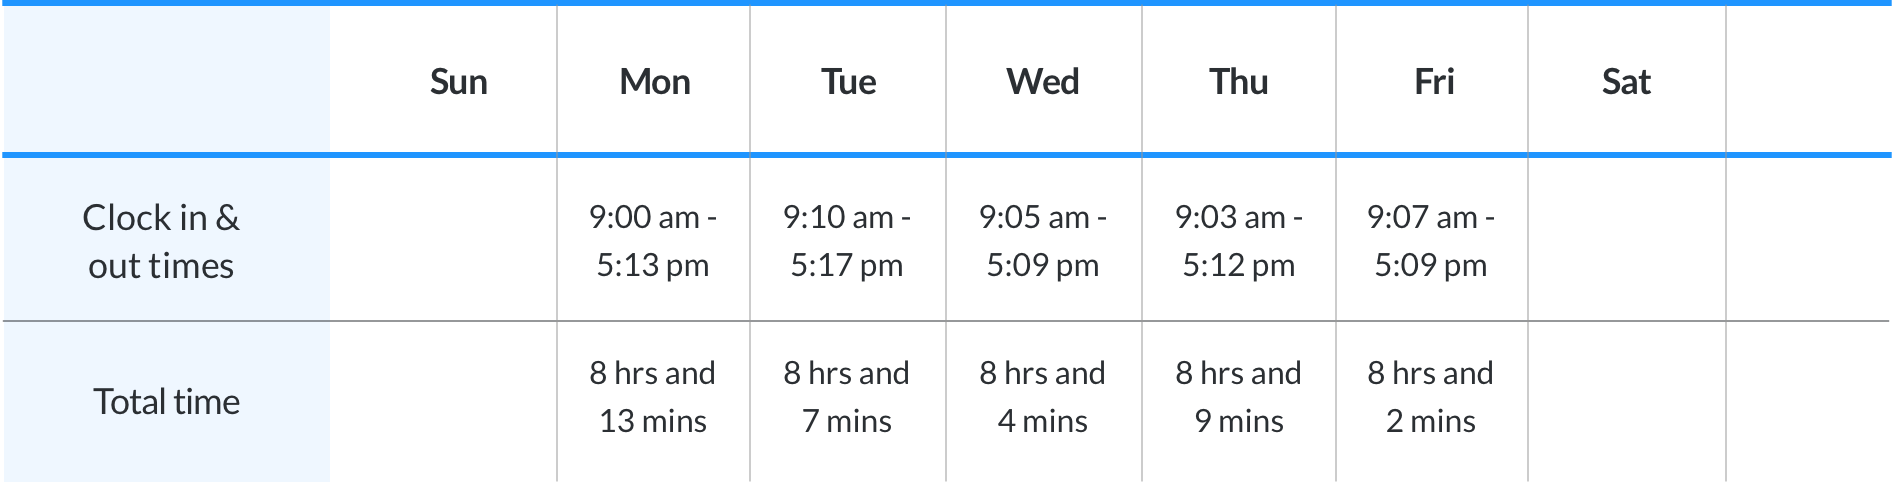 Actual time calculation chart